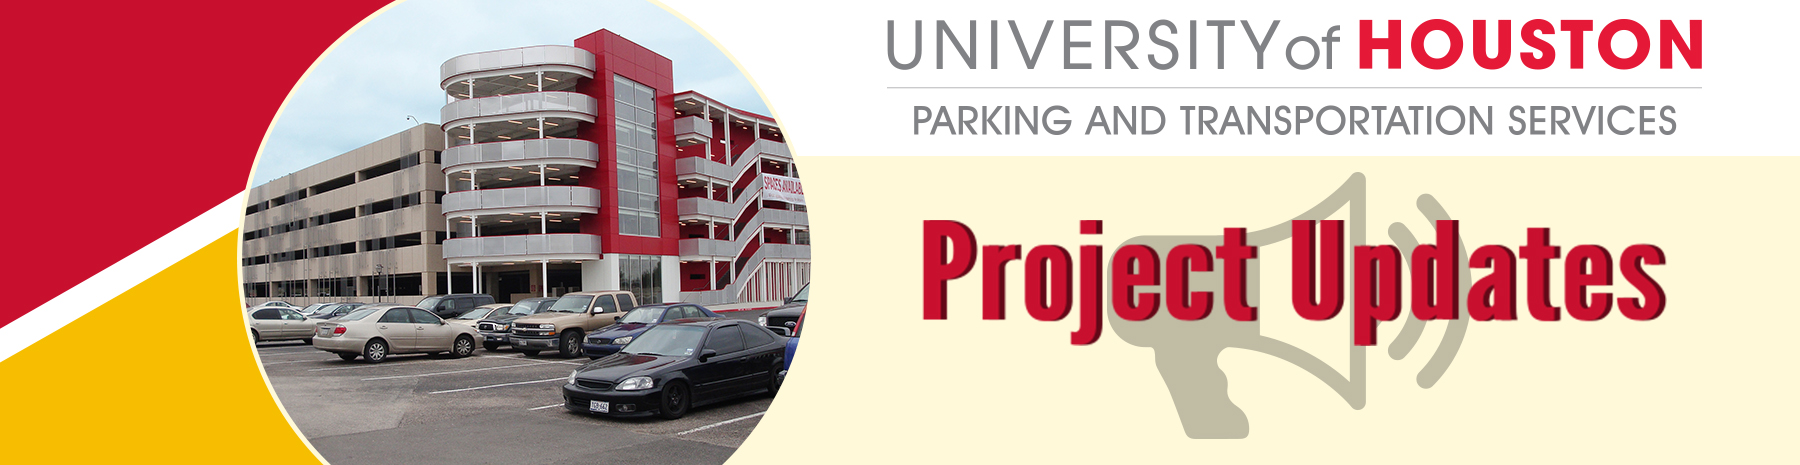 Carte W Garage Parking Transportation Project Updates University Of Houston